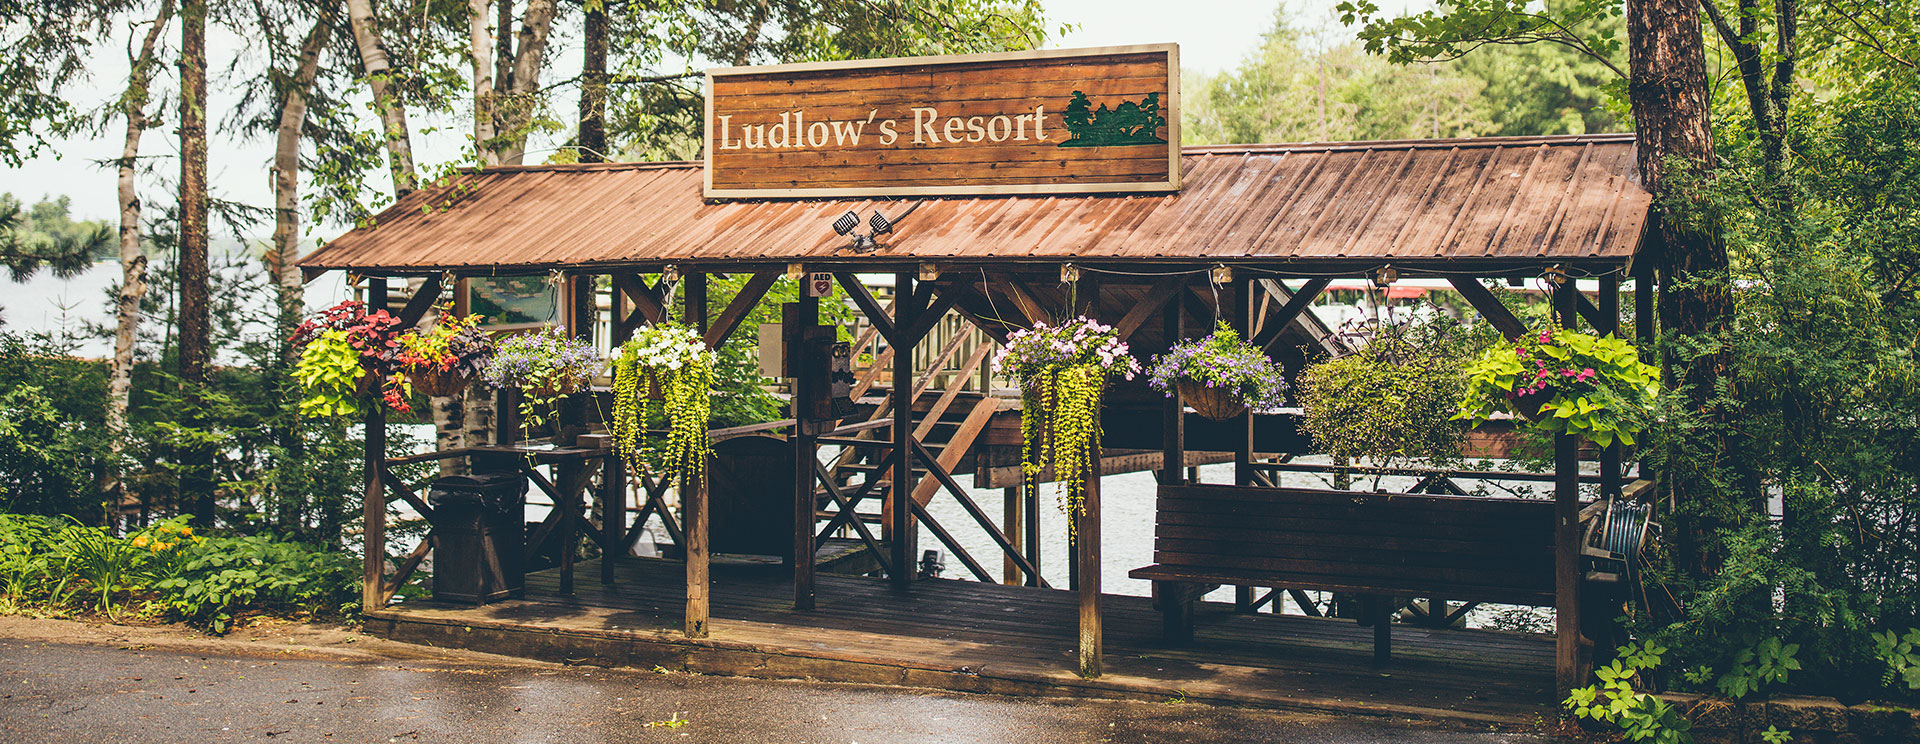 Ludlows Resort